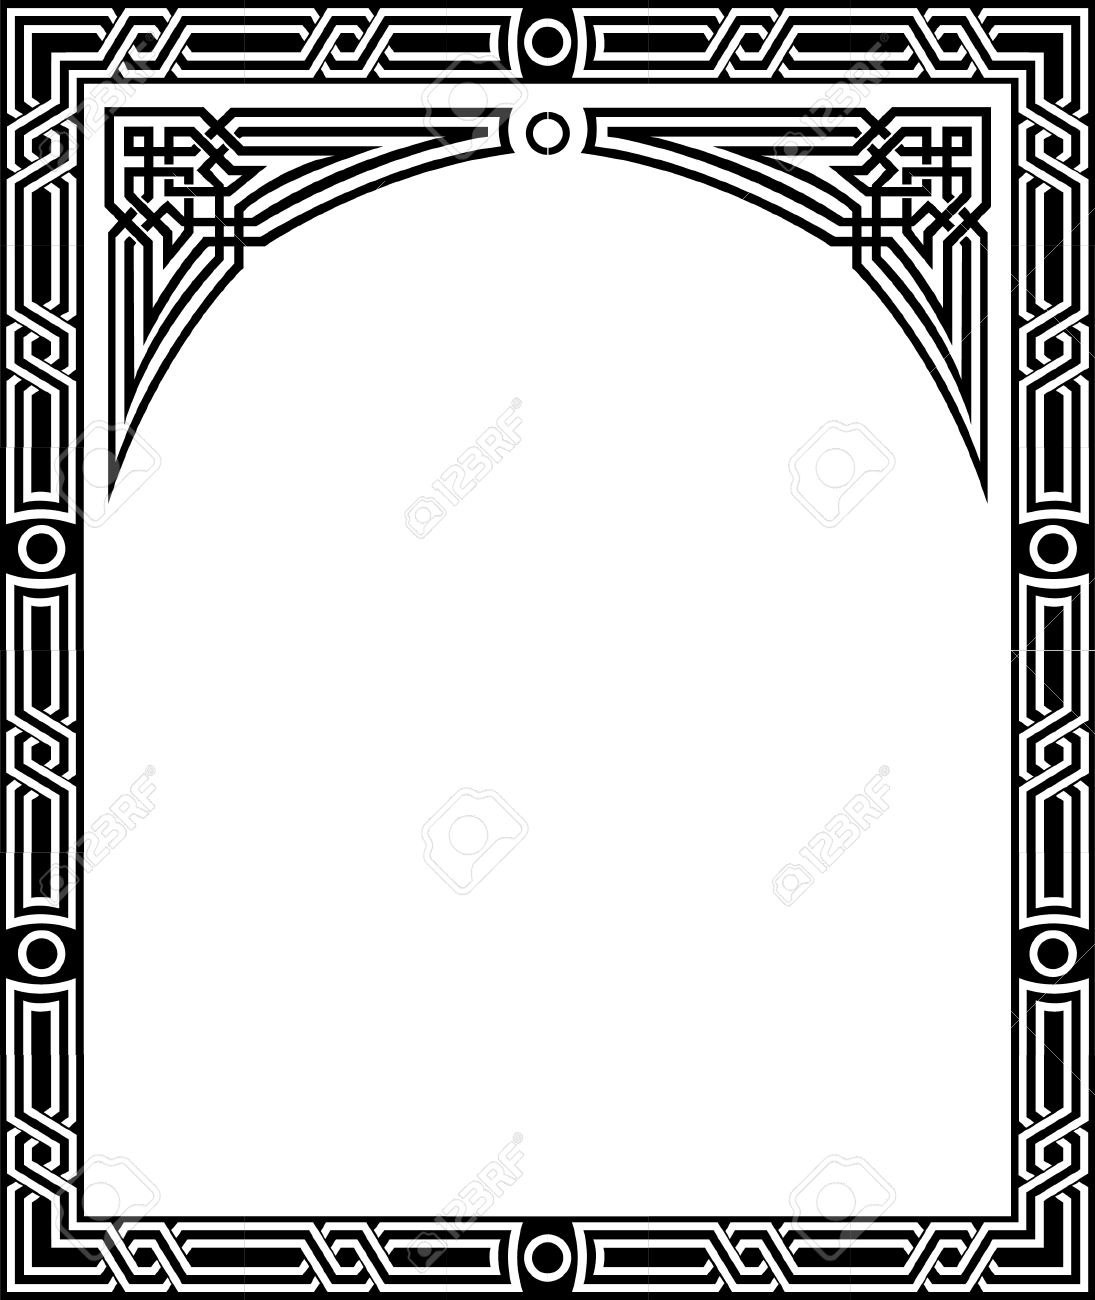 Islamic style border frame with elegant vector lines royalty free islamic style border frame with elegant vector lines stock vector 23185750 altavistaventures Images